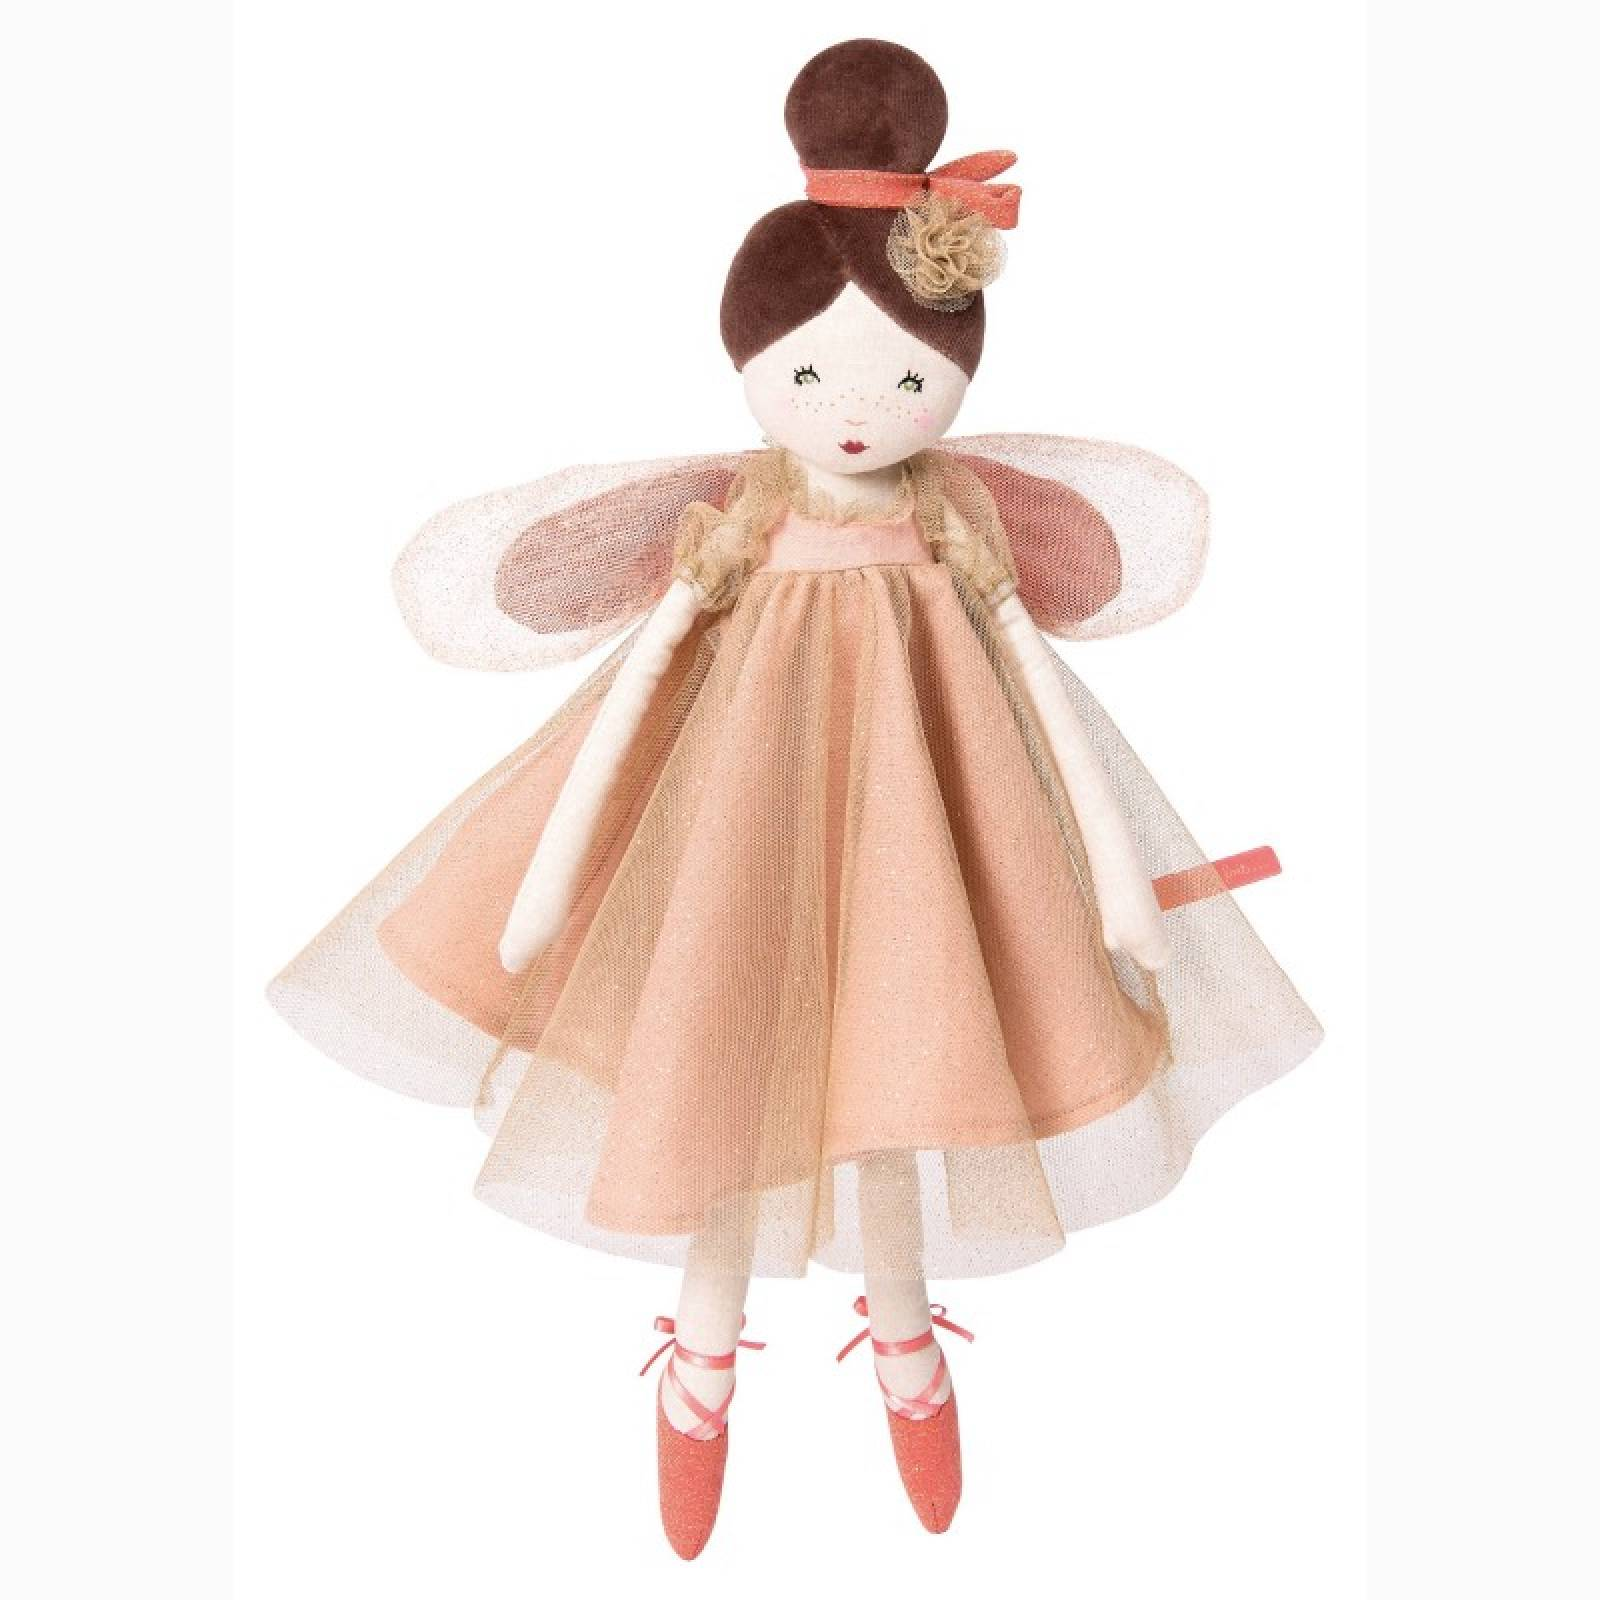 Enchanted Fairy Doll Soft Toy 6m+